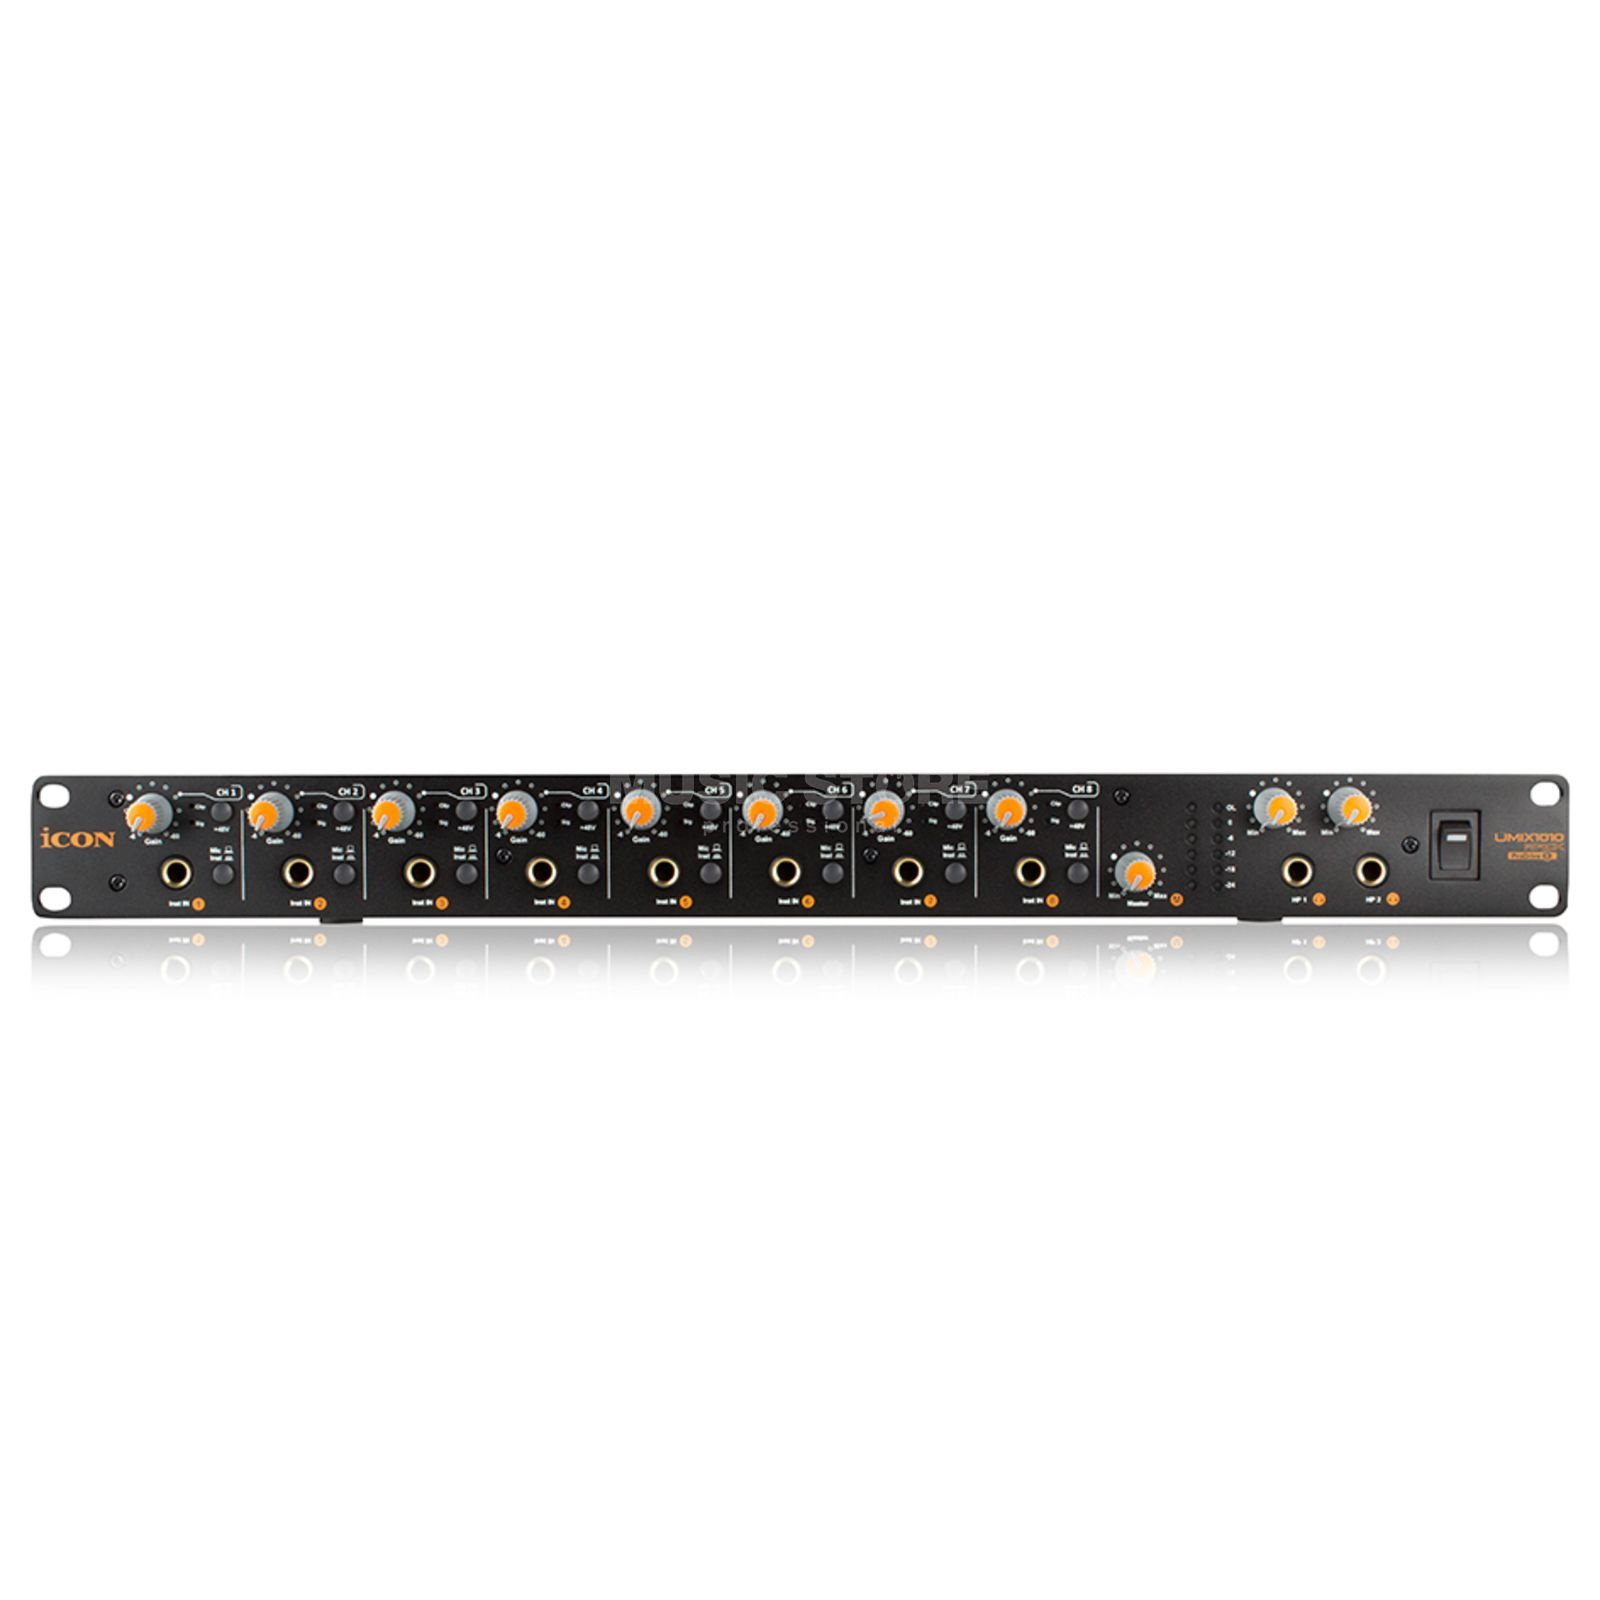 iCON Umix 1010 Rack 10-In/10-Out USB-Interface Product Image